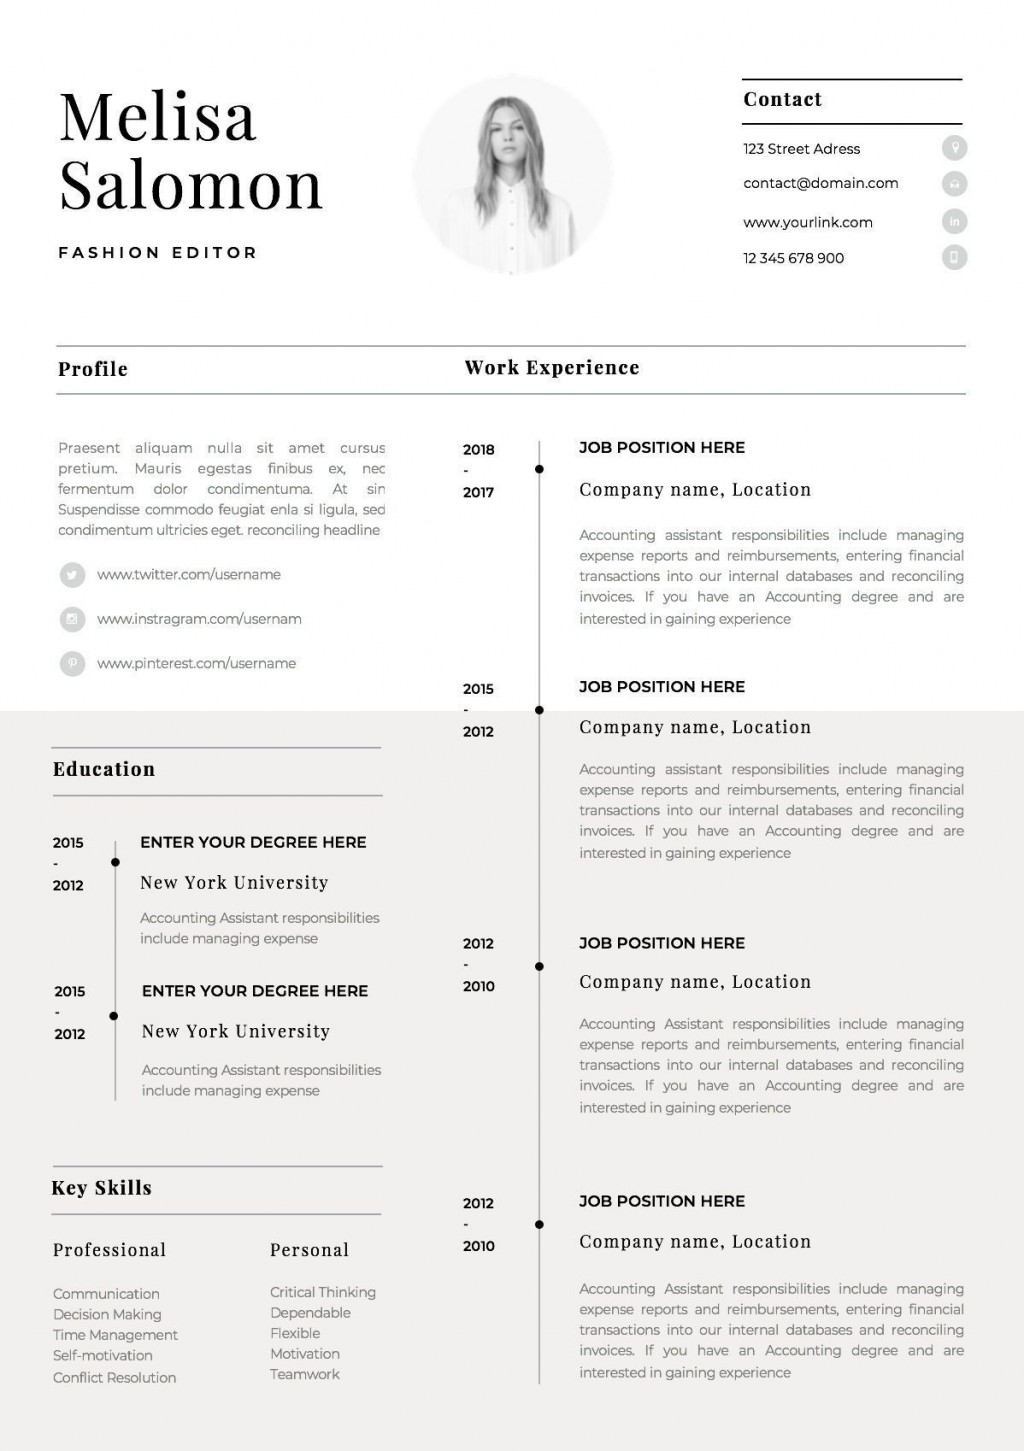 000 Rare Resume Template On Word High Def  Free Download Australia Microsoft Office 2007 PhilippineLarge